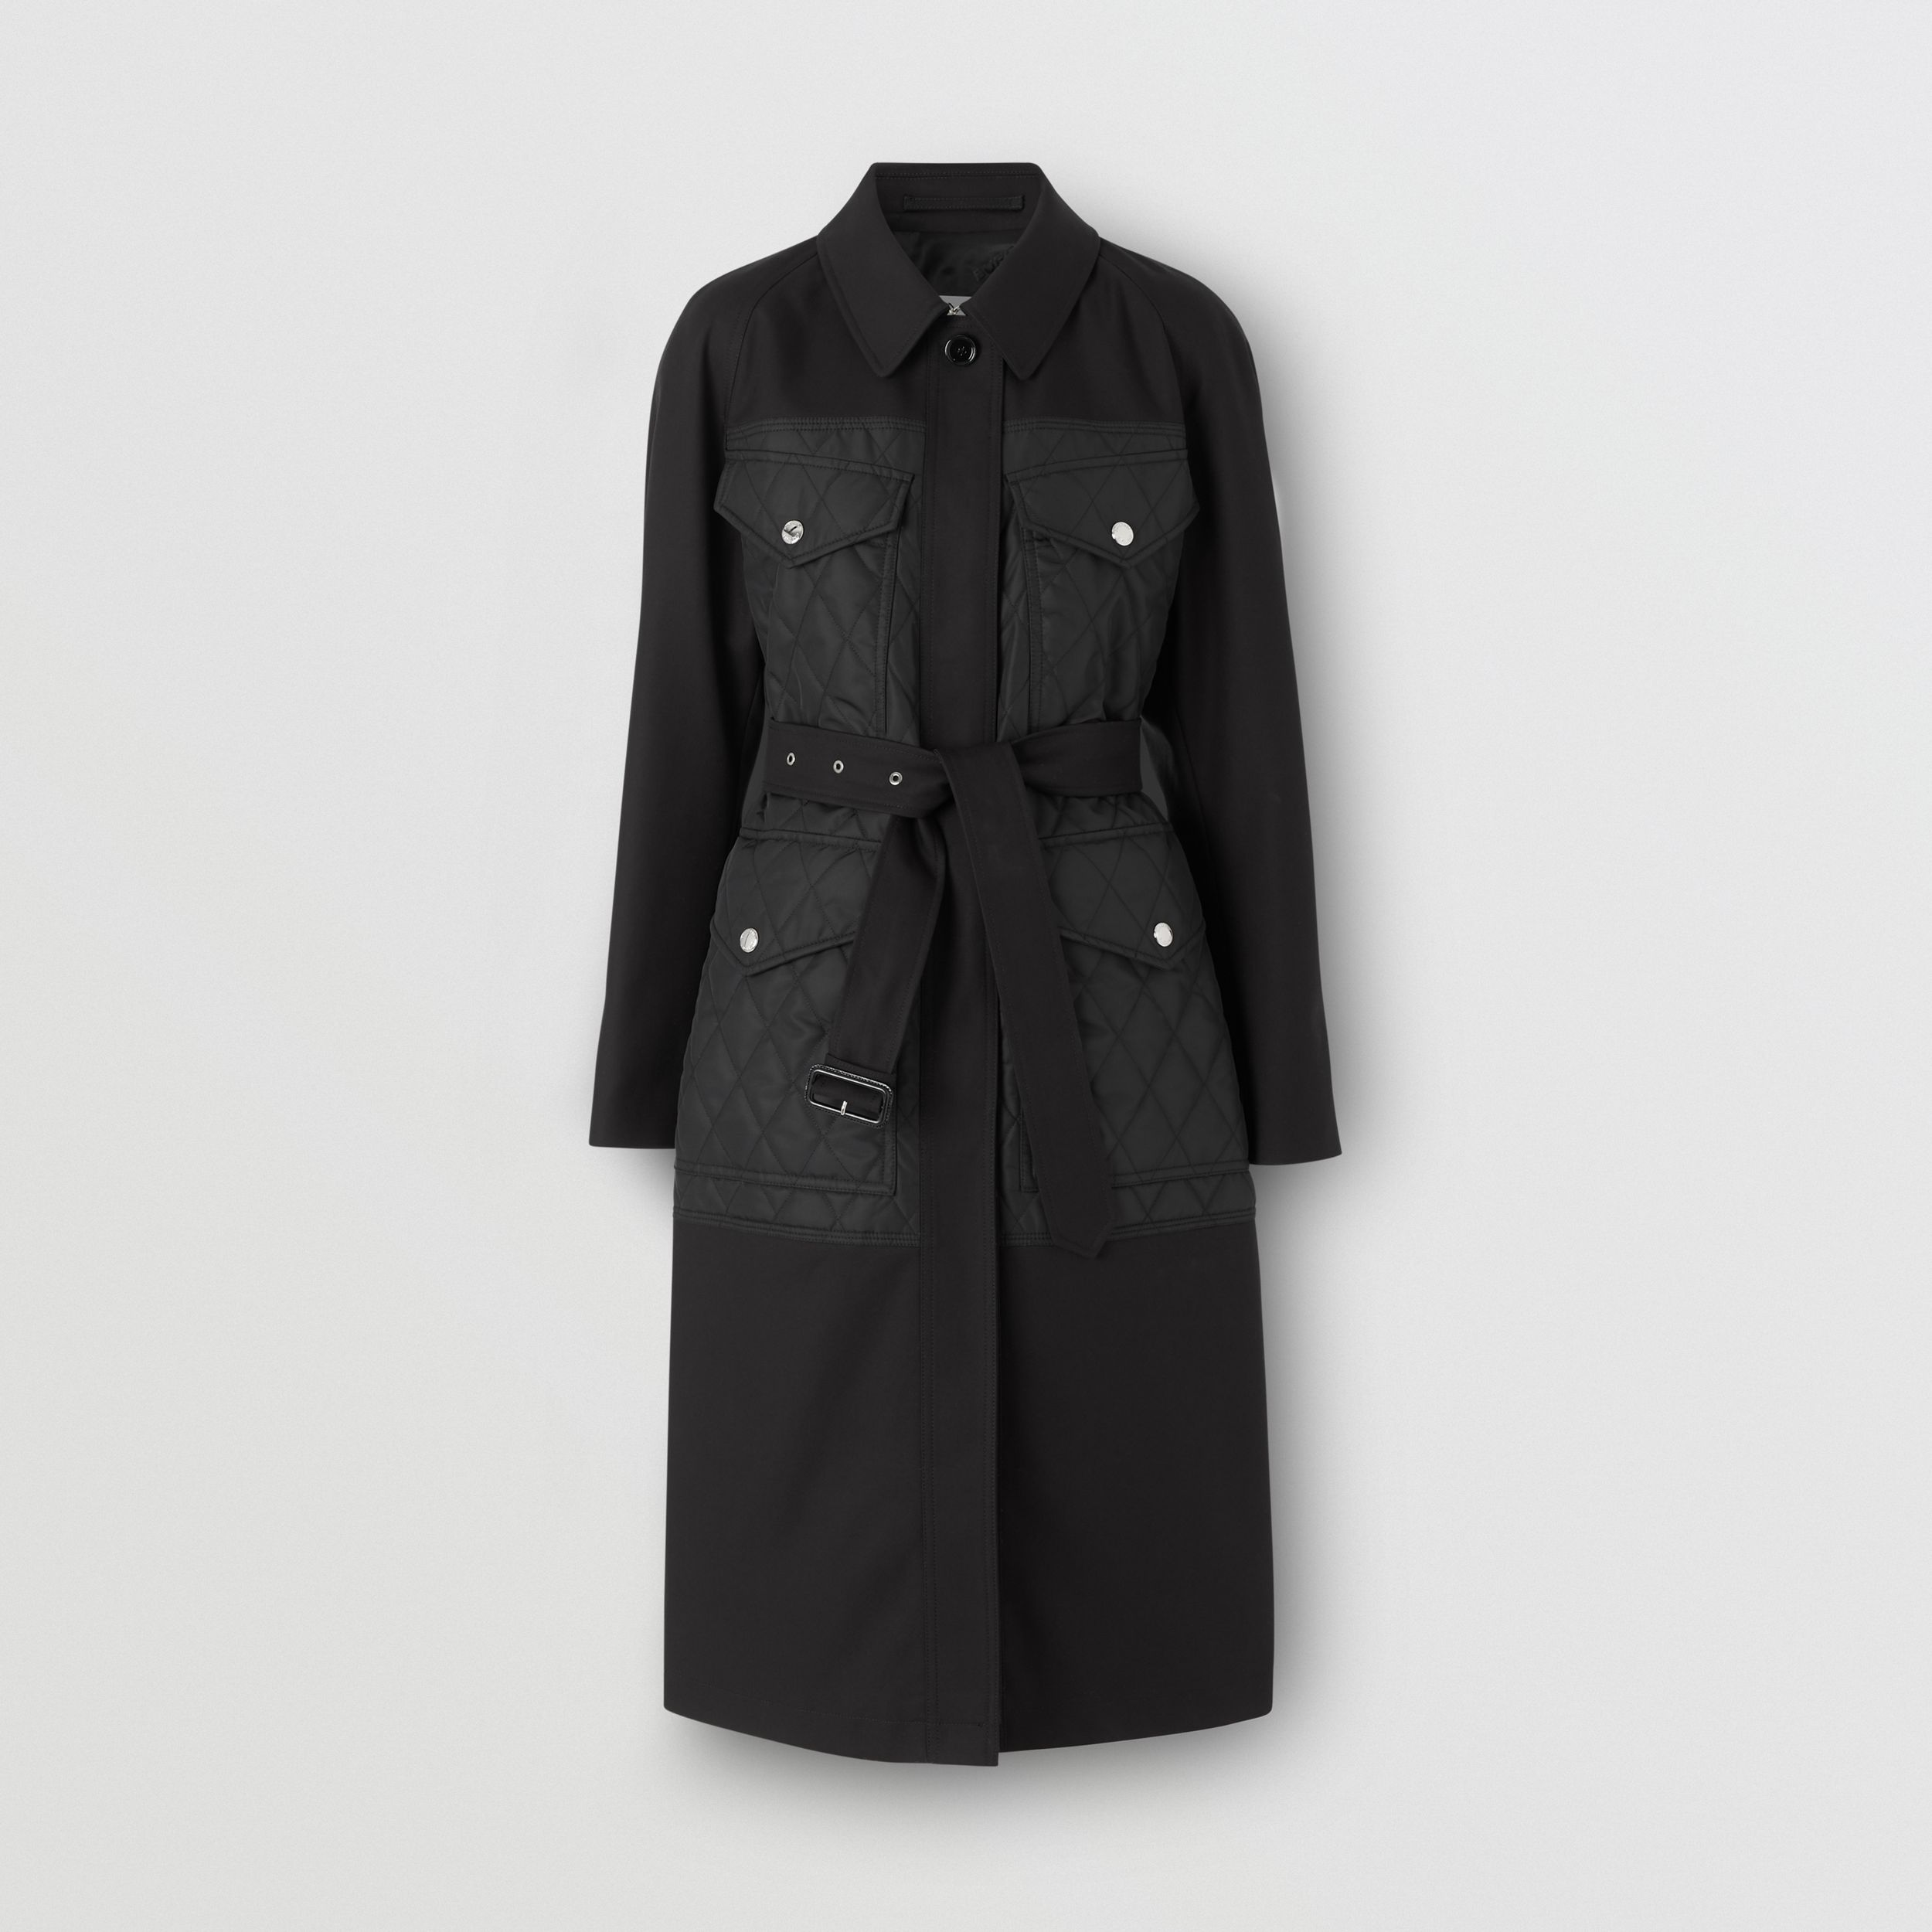 Diamond Quilted Panel Cotton Gabardine Car Coat in Black - Women | Burberry Australia - 4